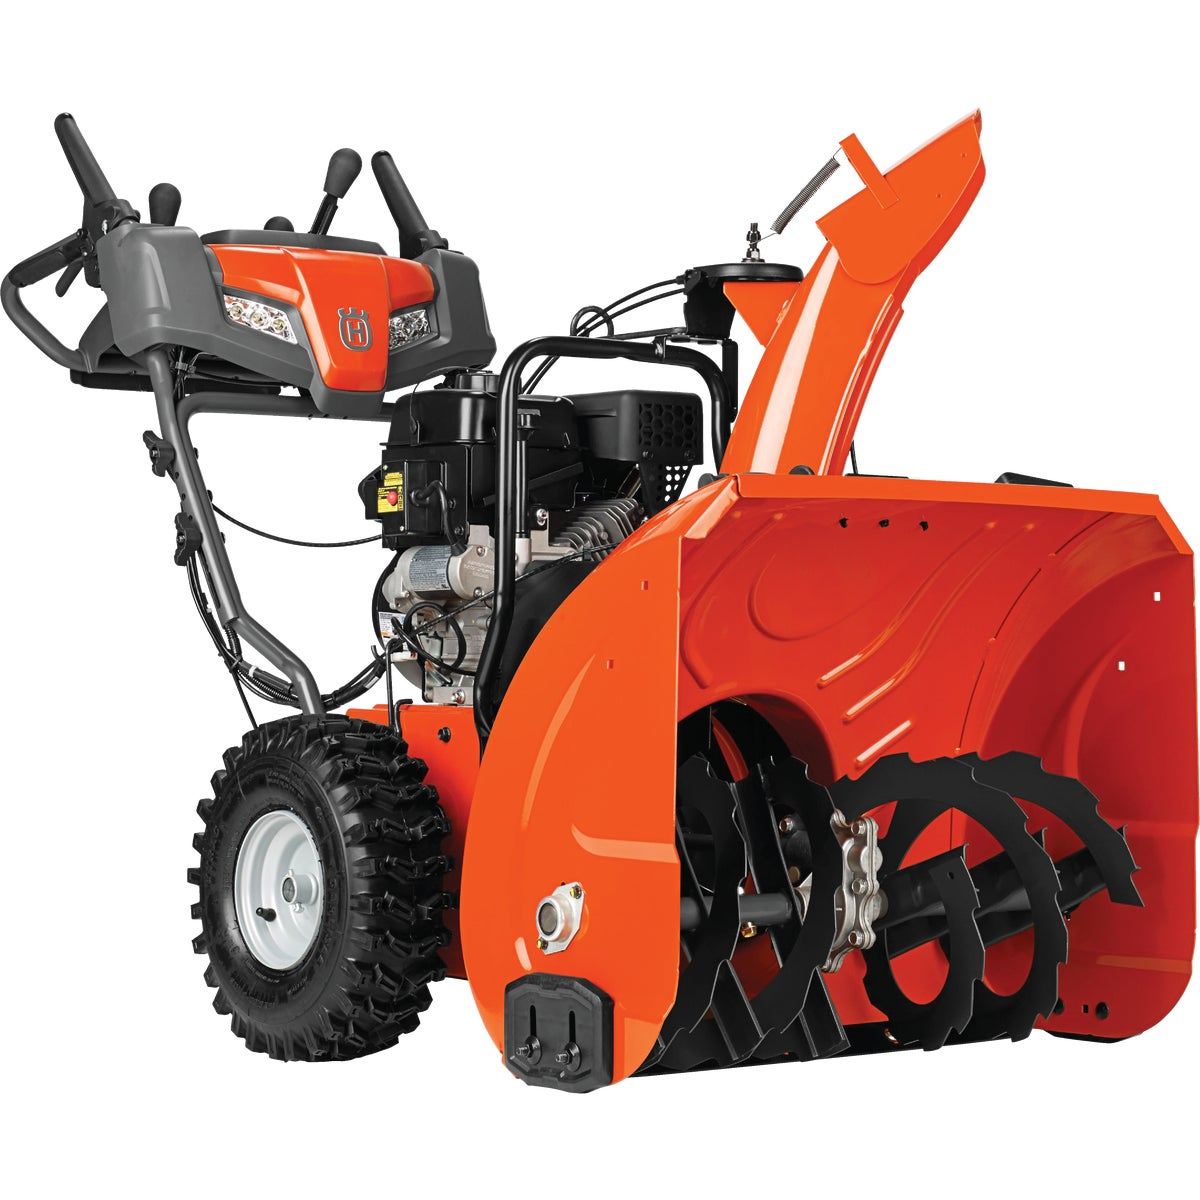 "27"" 2-STAGE SNOWTHROWER - 96192003800 by Husqvarna Outdoor"